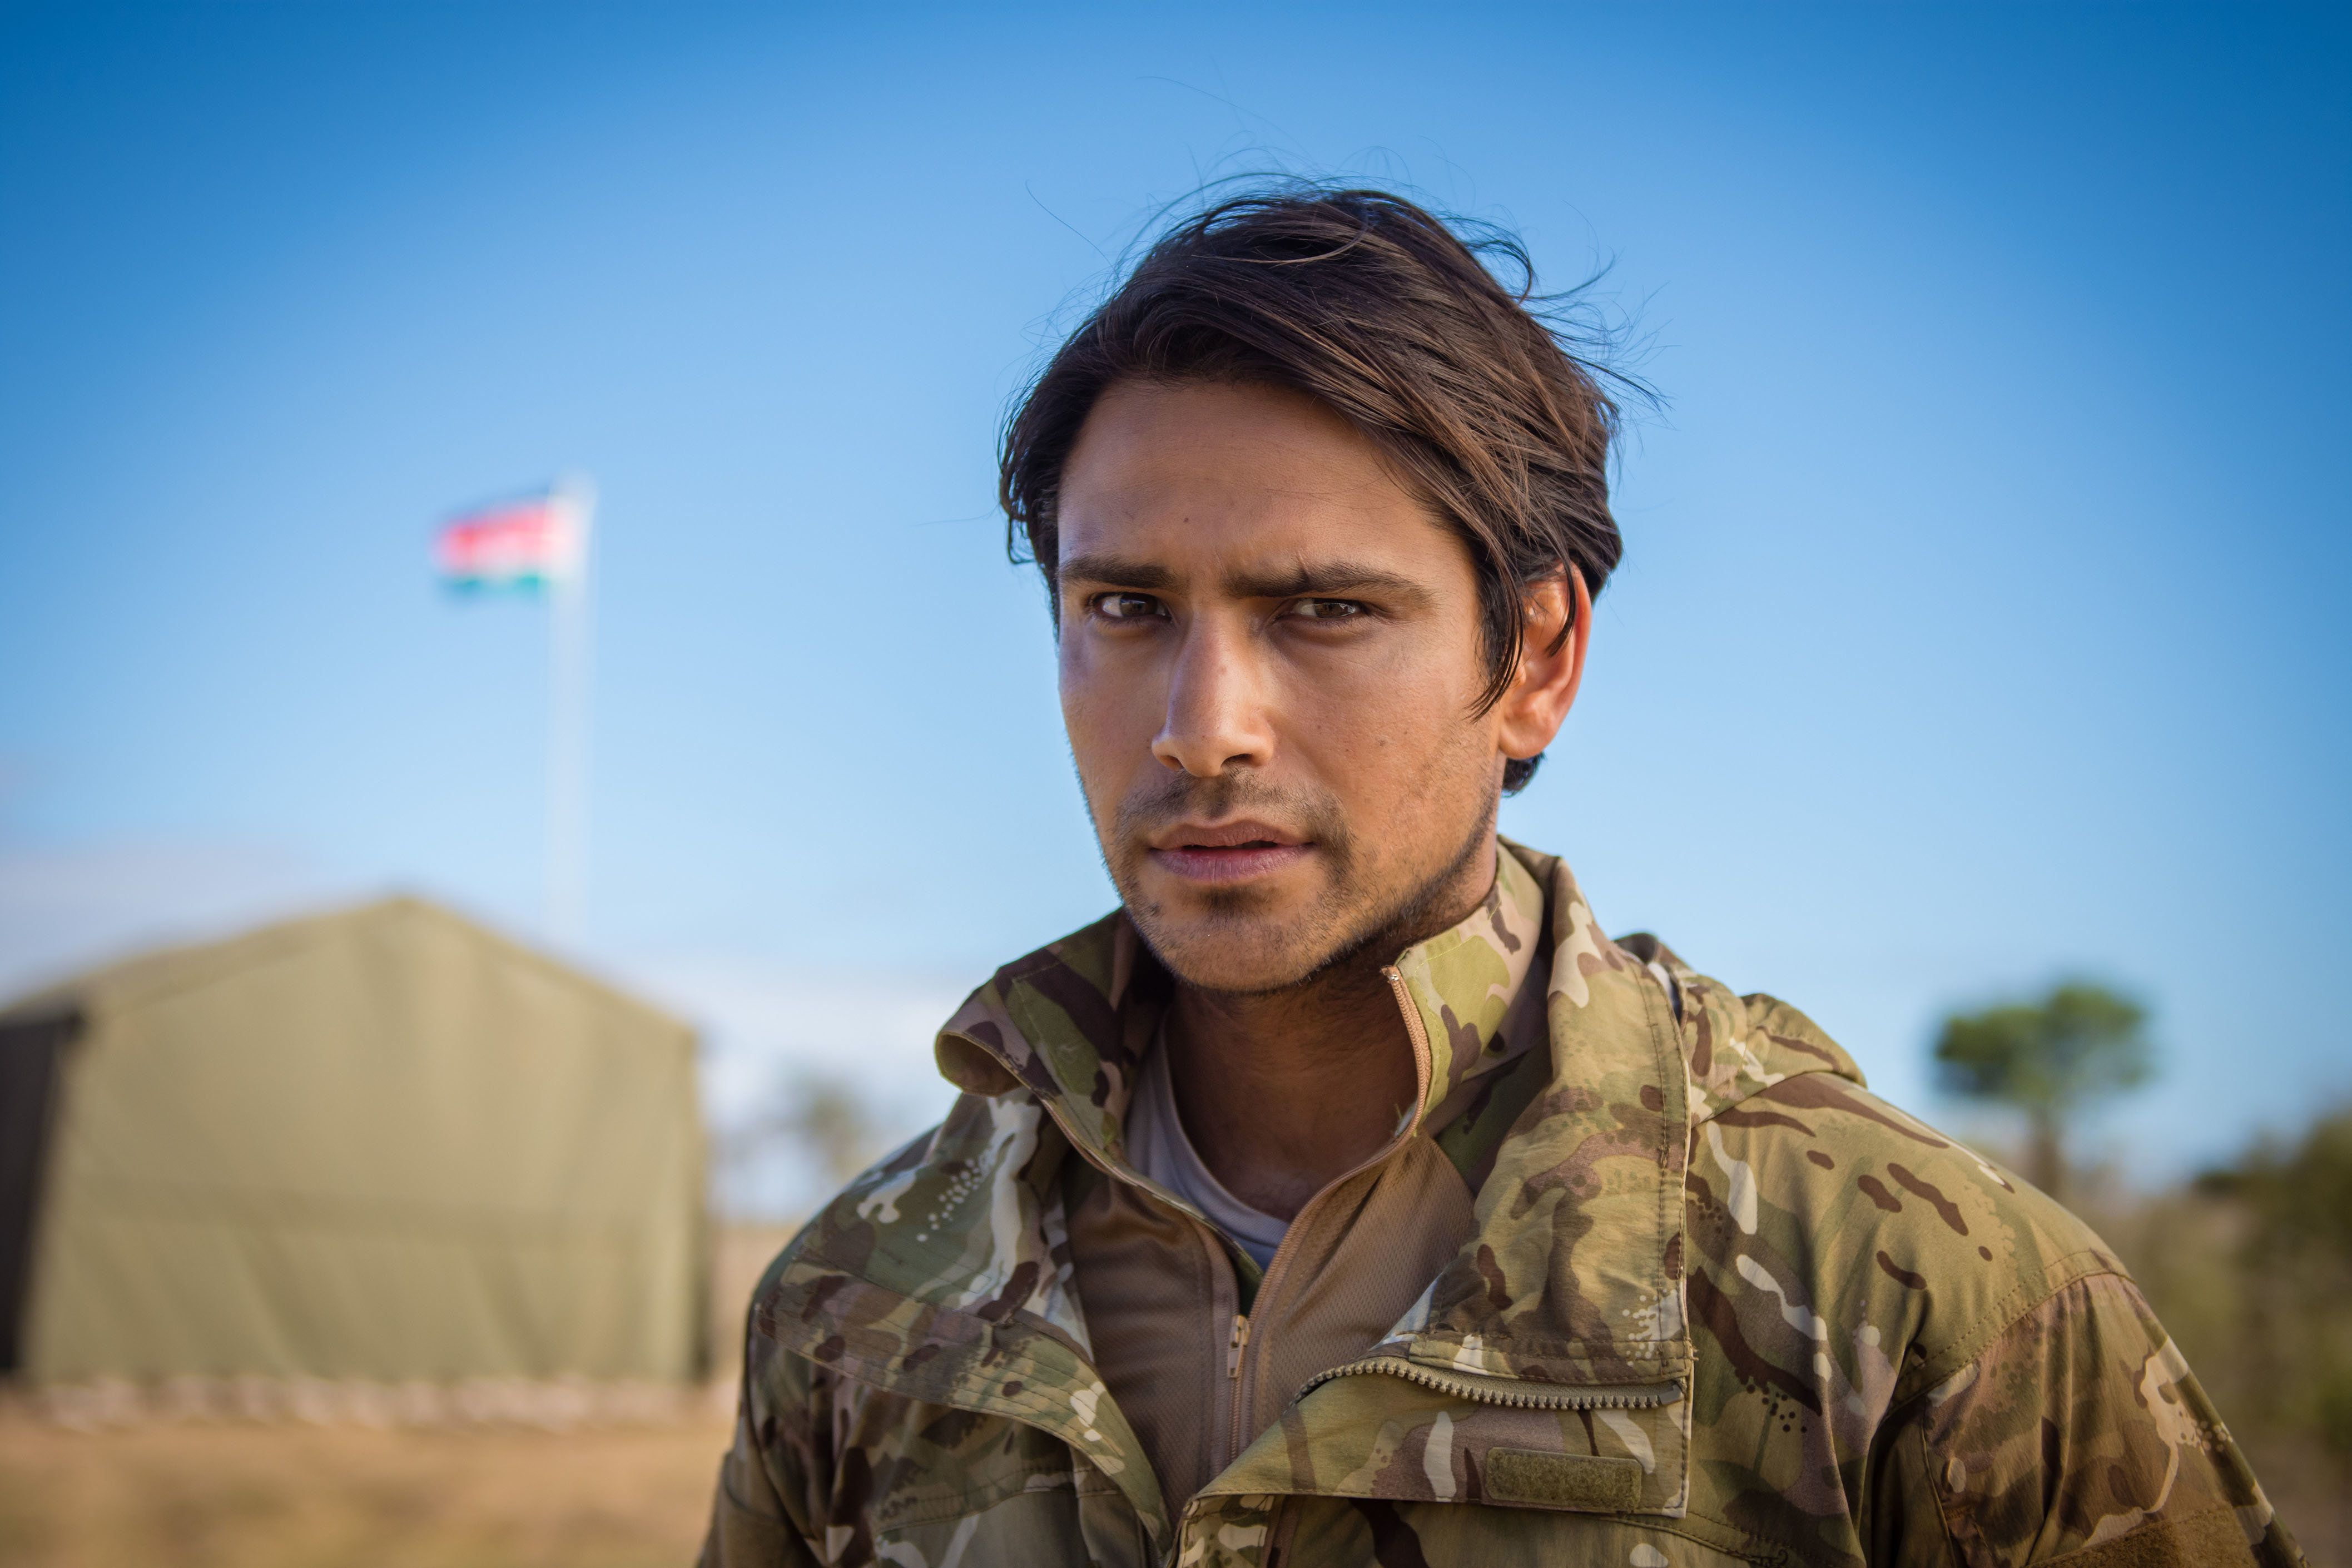 Enjoying 'Our Girl'? Get To Know Luke Pasqualino A Little